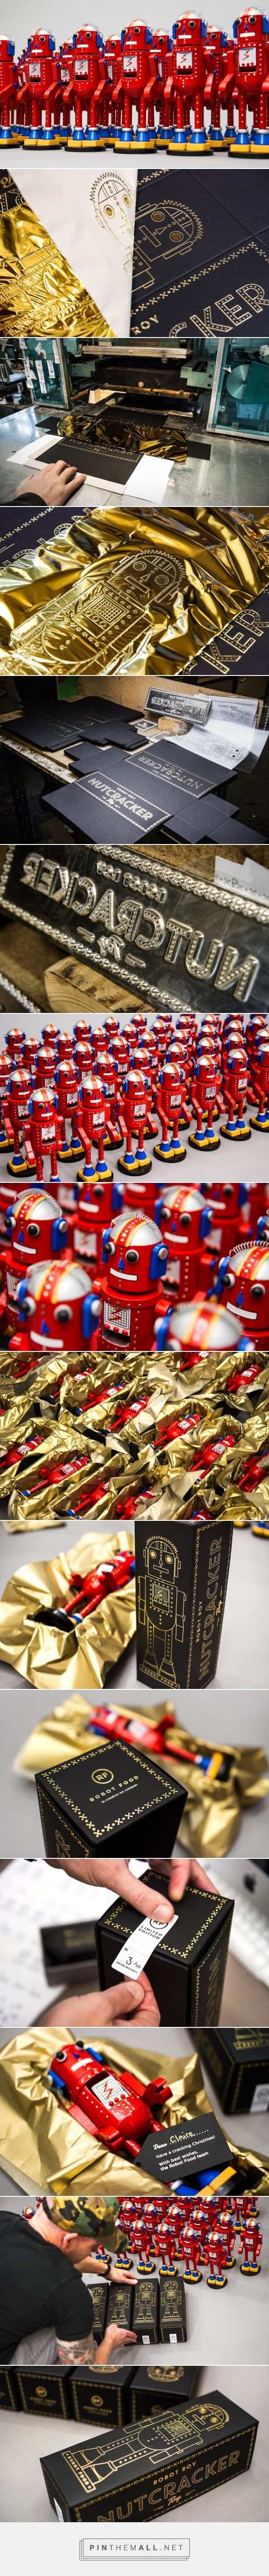 #Robot Roy - The Nutcracker #Toy #packaging by Robot Food - http://www.packagingoftheworld.com/2014/12/robot-roy-nutcracker-toy.html